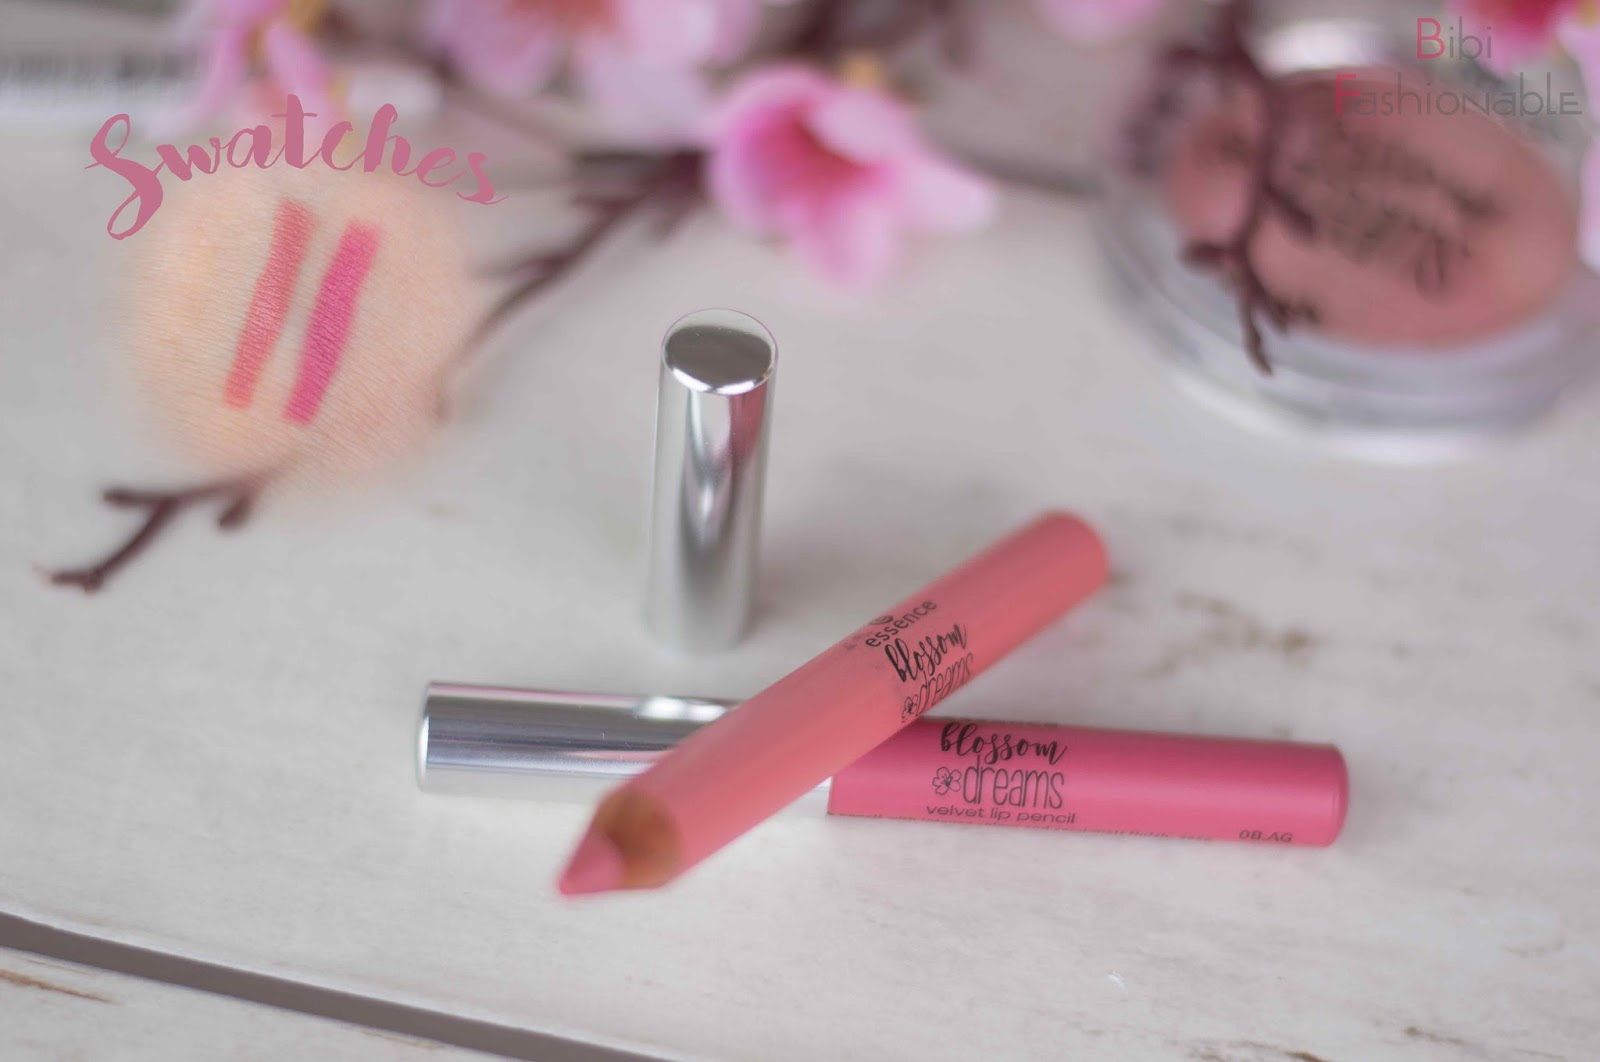 essence blossom dreams velvet lip pencil